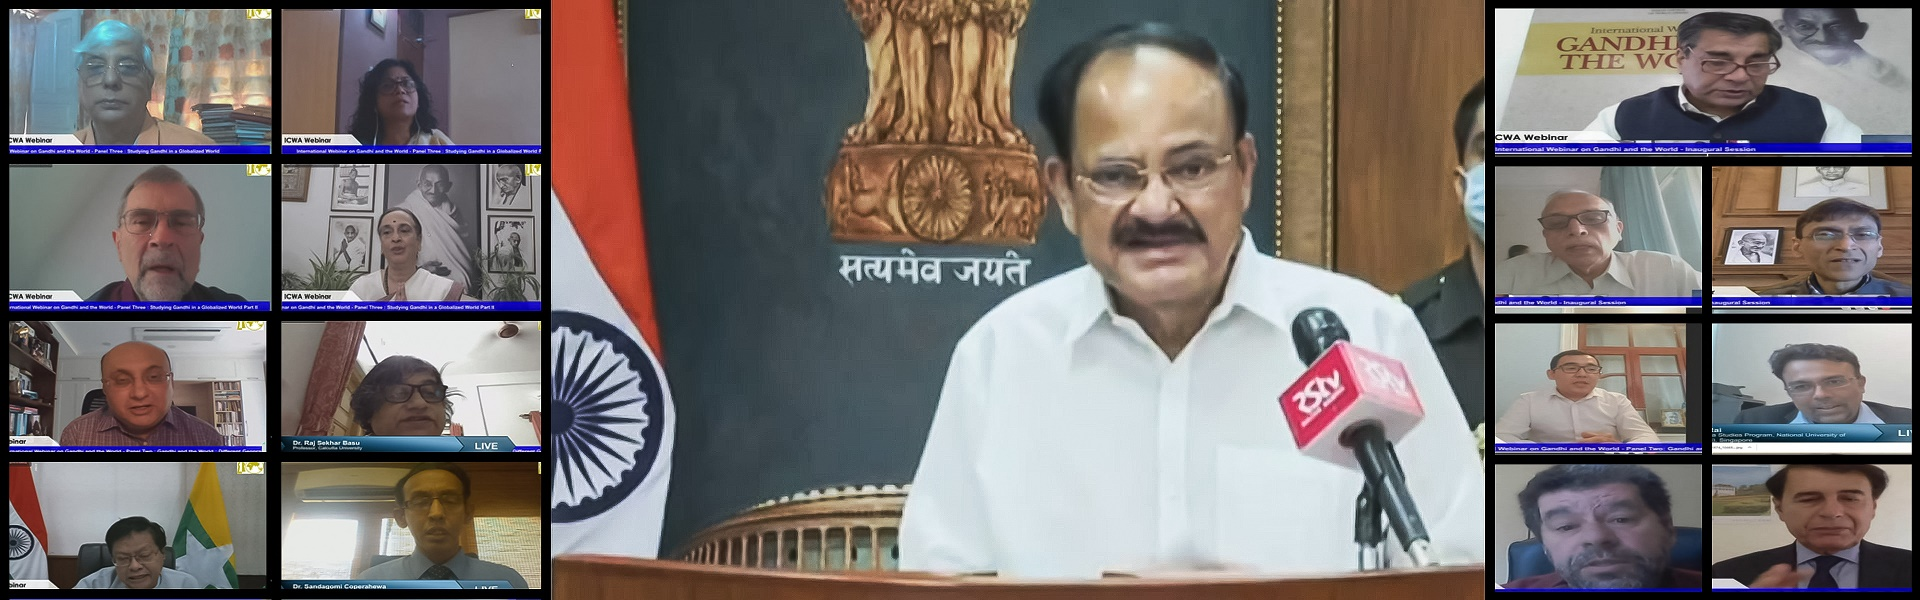 Shri M. Venkaiah Naidu, Hon'ble Vice President of India and President ICWA, delivering the Valedictory Address at the ICWA International Webinar on 'Gandhi and the World', 2 October 2020